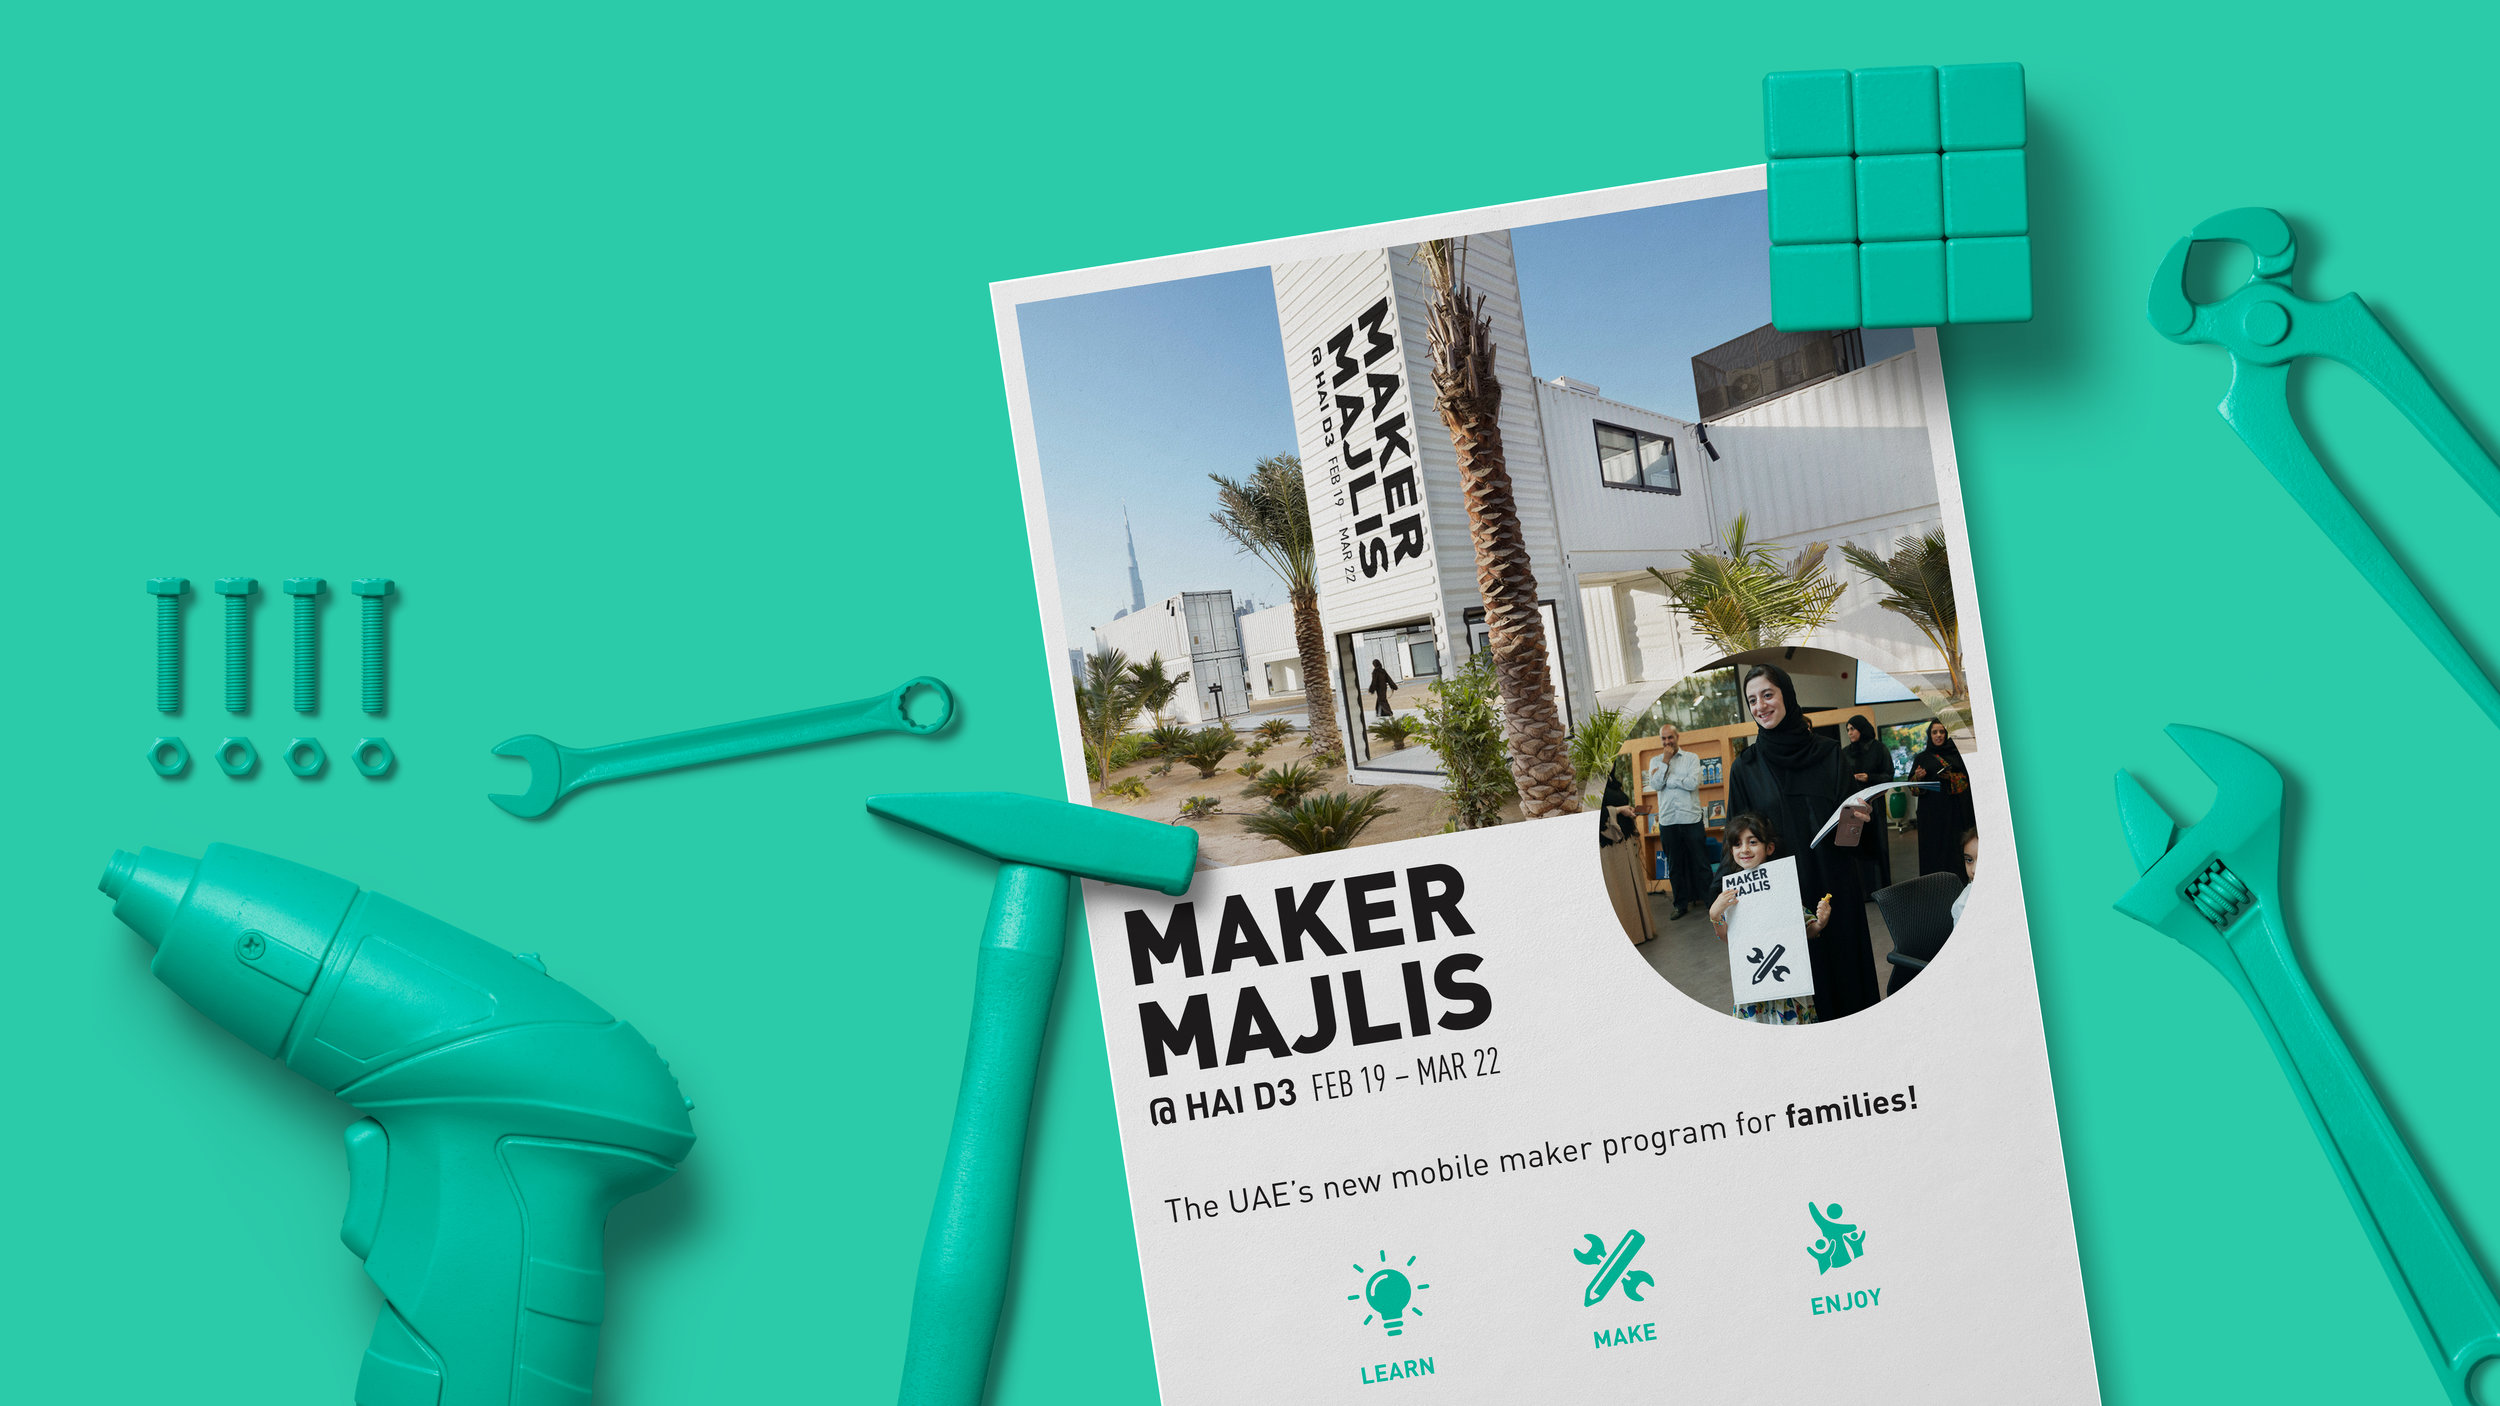 A mobile majlis that goes from neighbourhood to neighbourhood,designed to bring families together to work on purposeful maker projects.